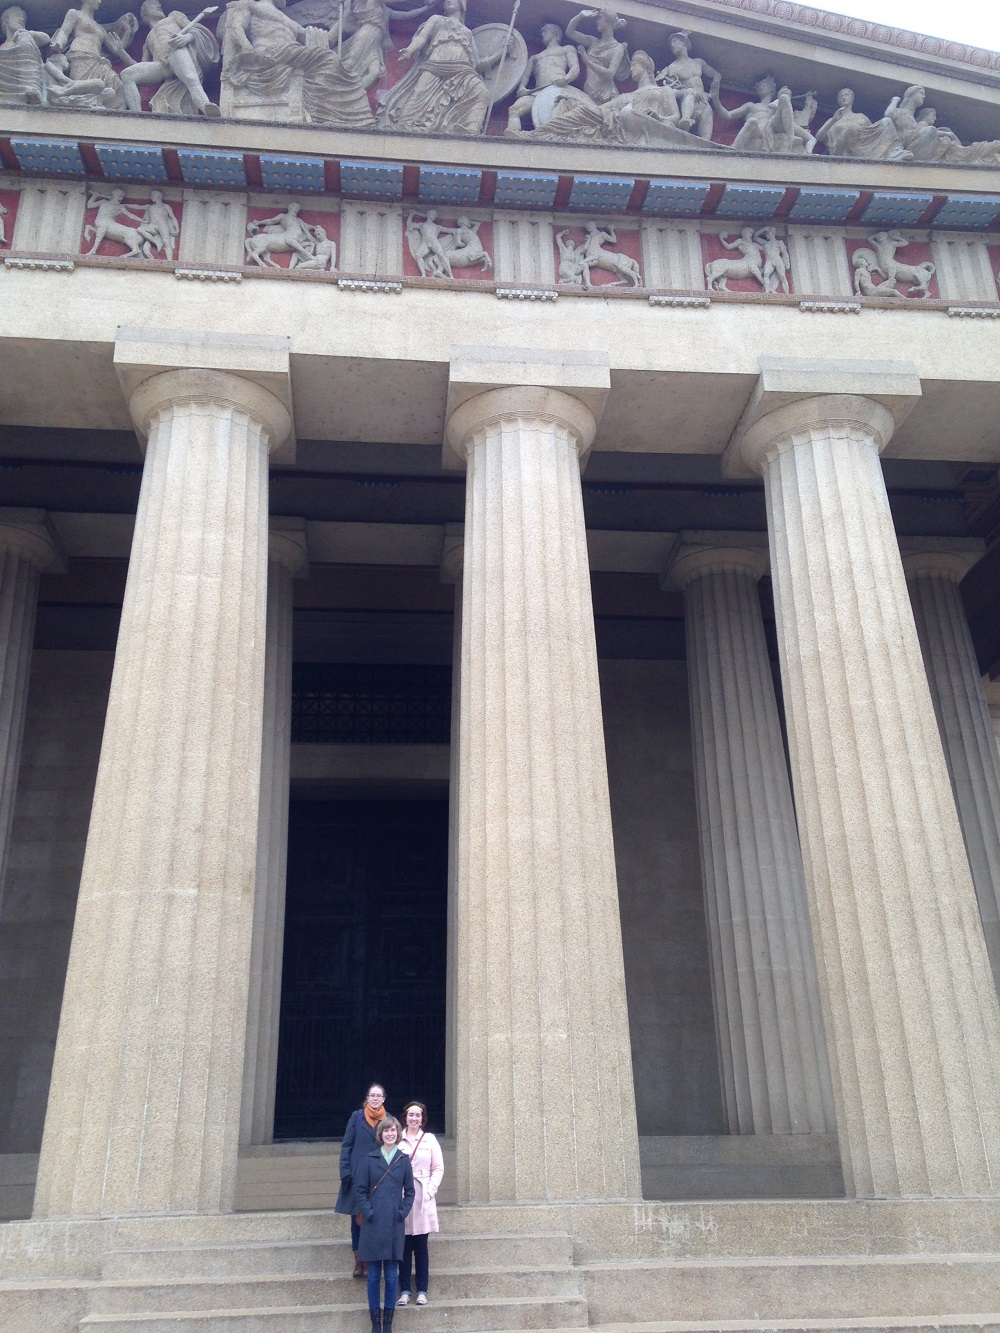 Cousins and me on the steps of the Parthenon (Nashville, TN). Photo by Steve Ladavich.